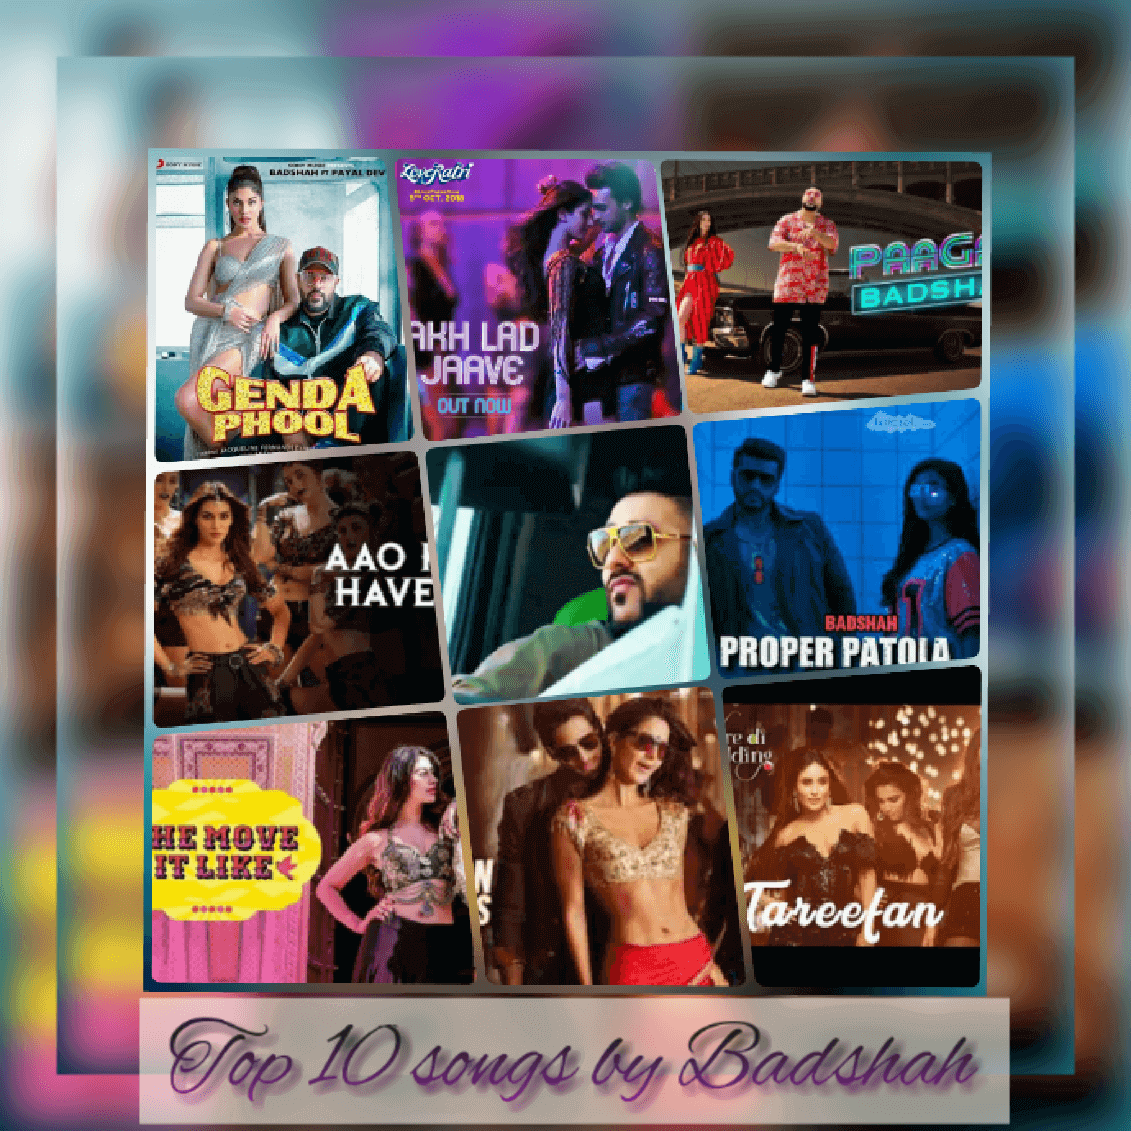 Best of top 10 songs by Badshah that will force you to move